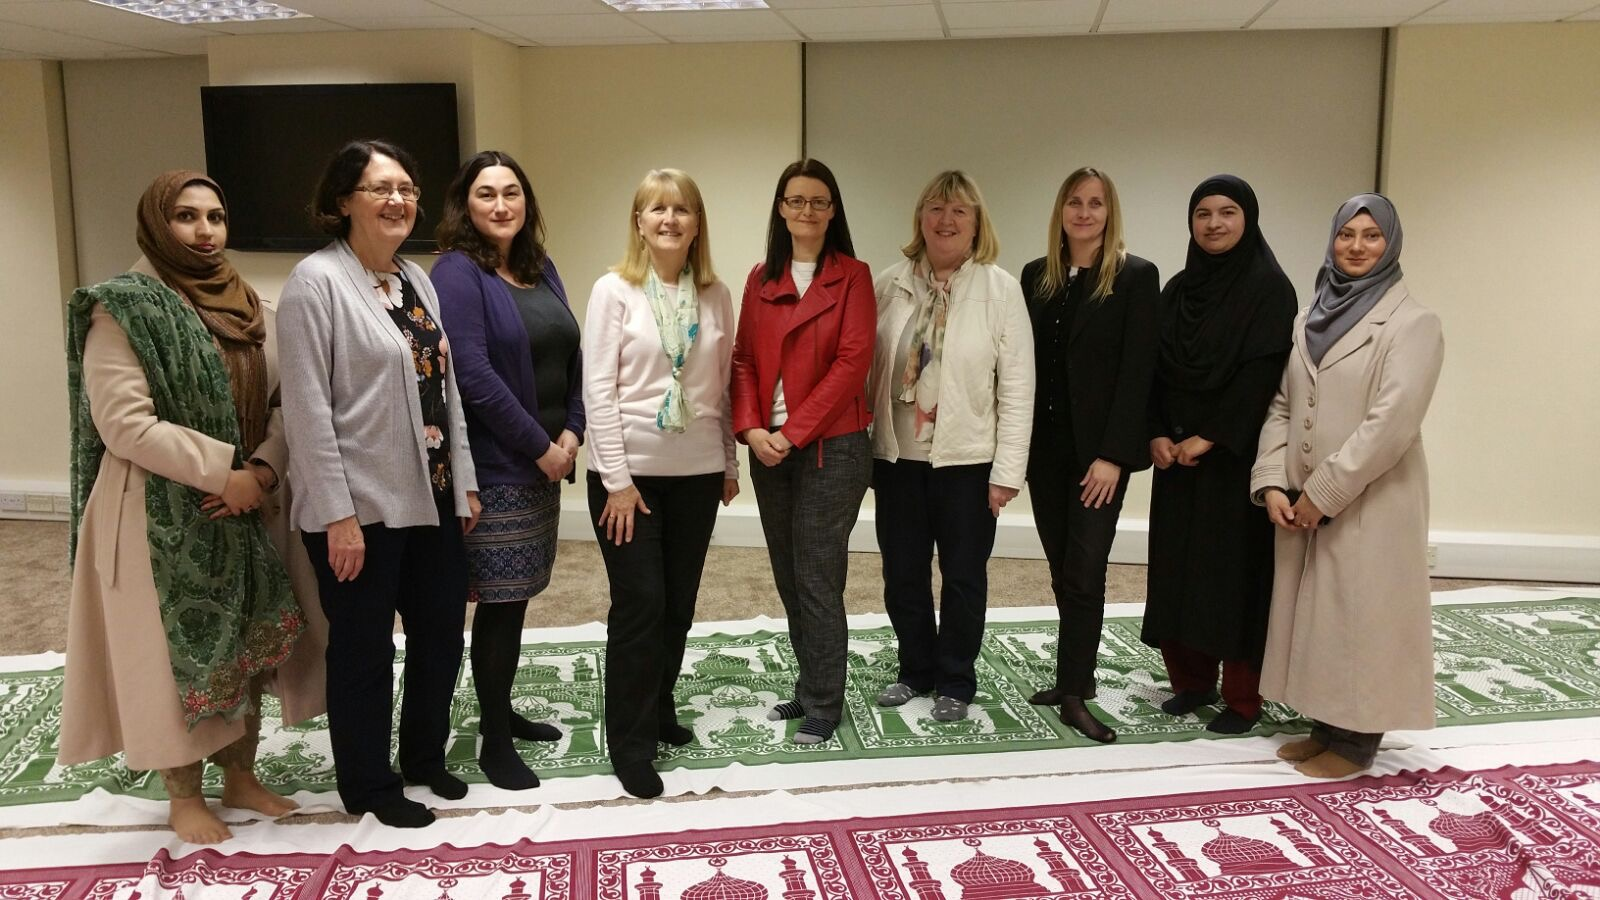 To coincide with International Women's Day, the Ahmadiyya Muslim Women's Association (AMWA) held a Peace Conference